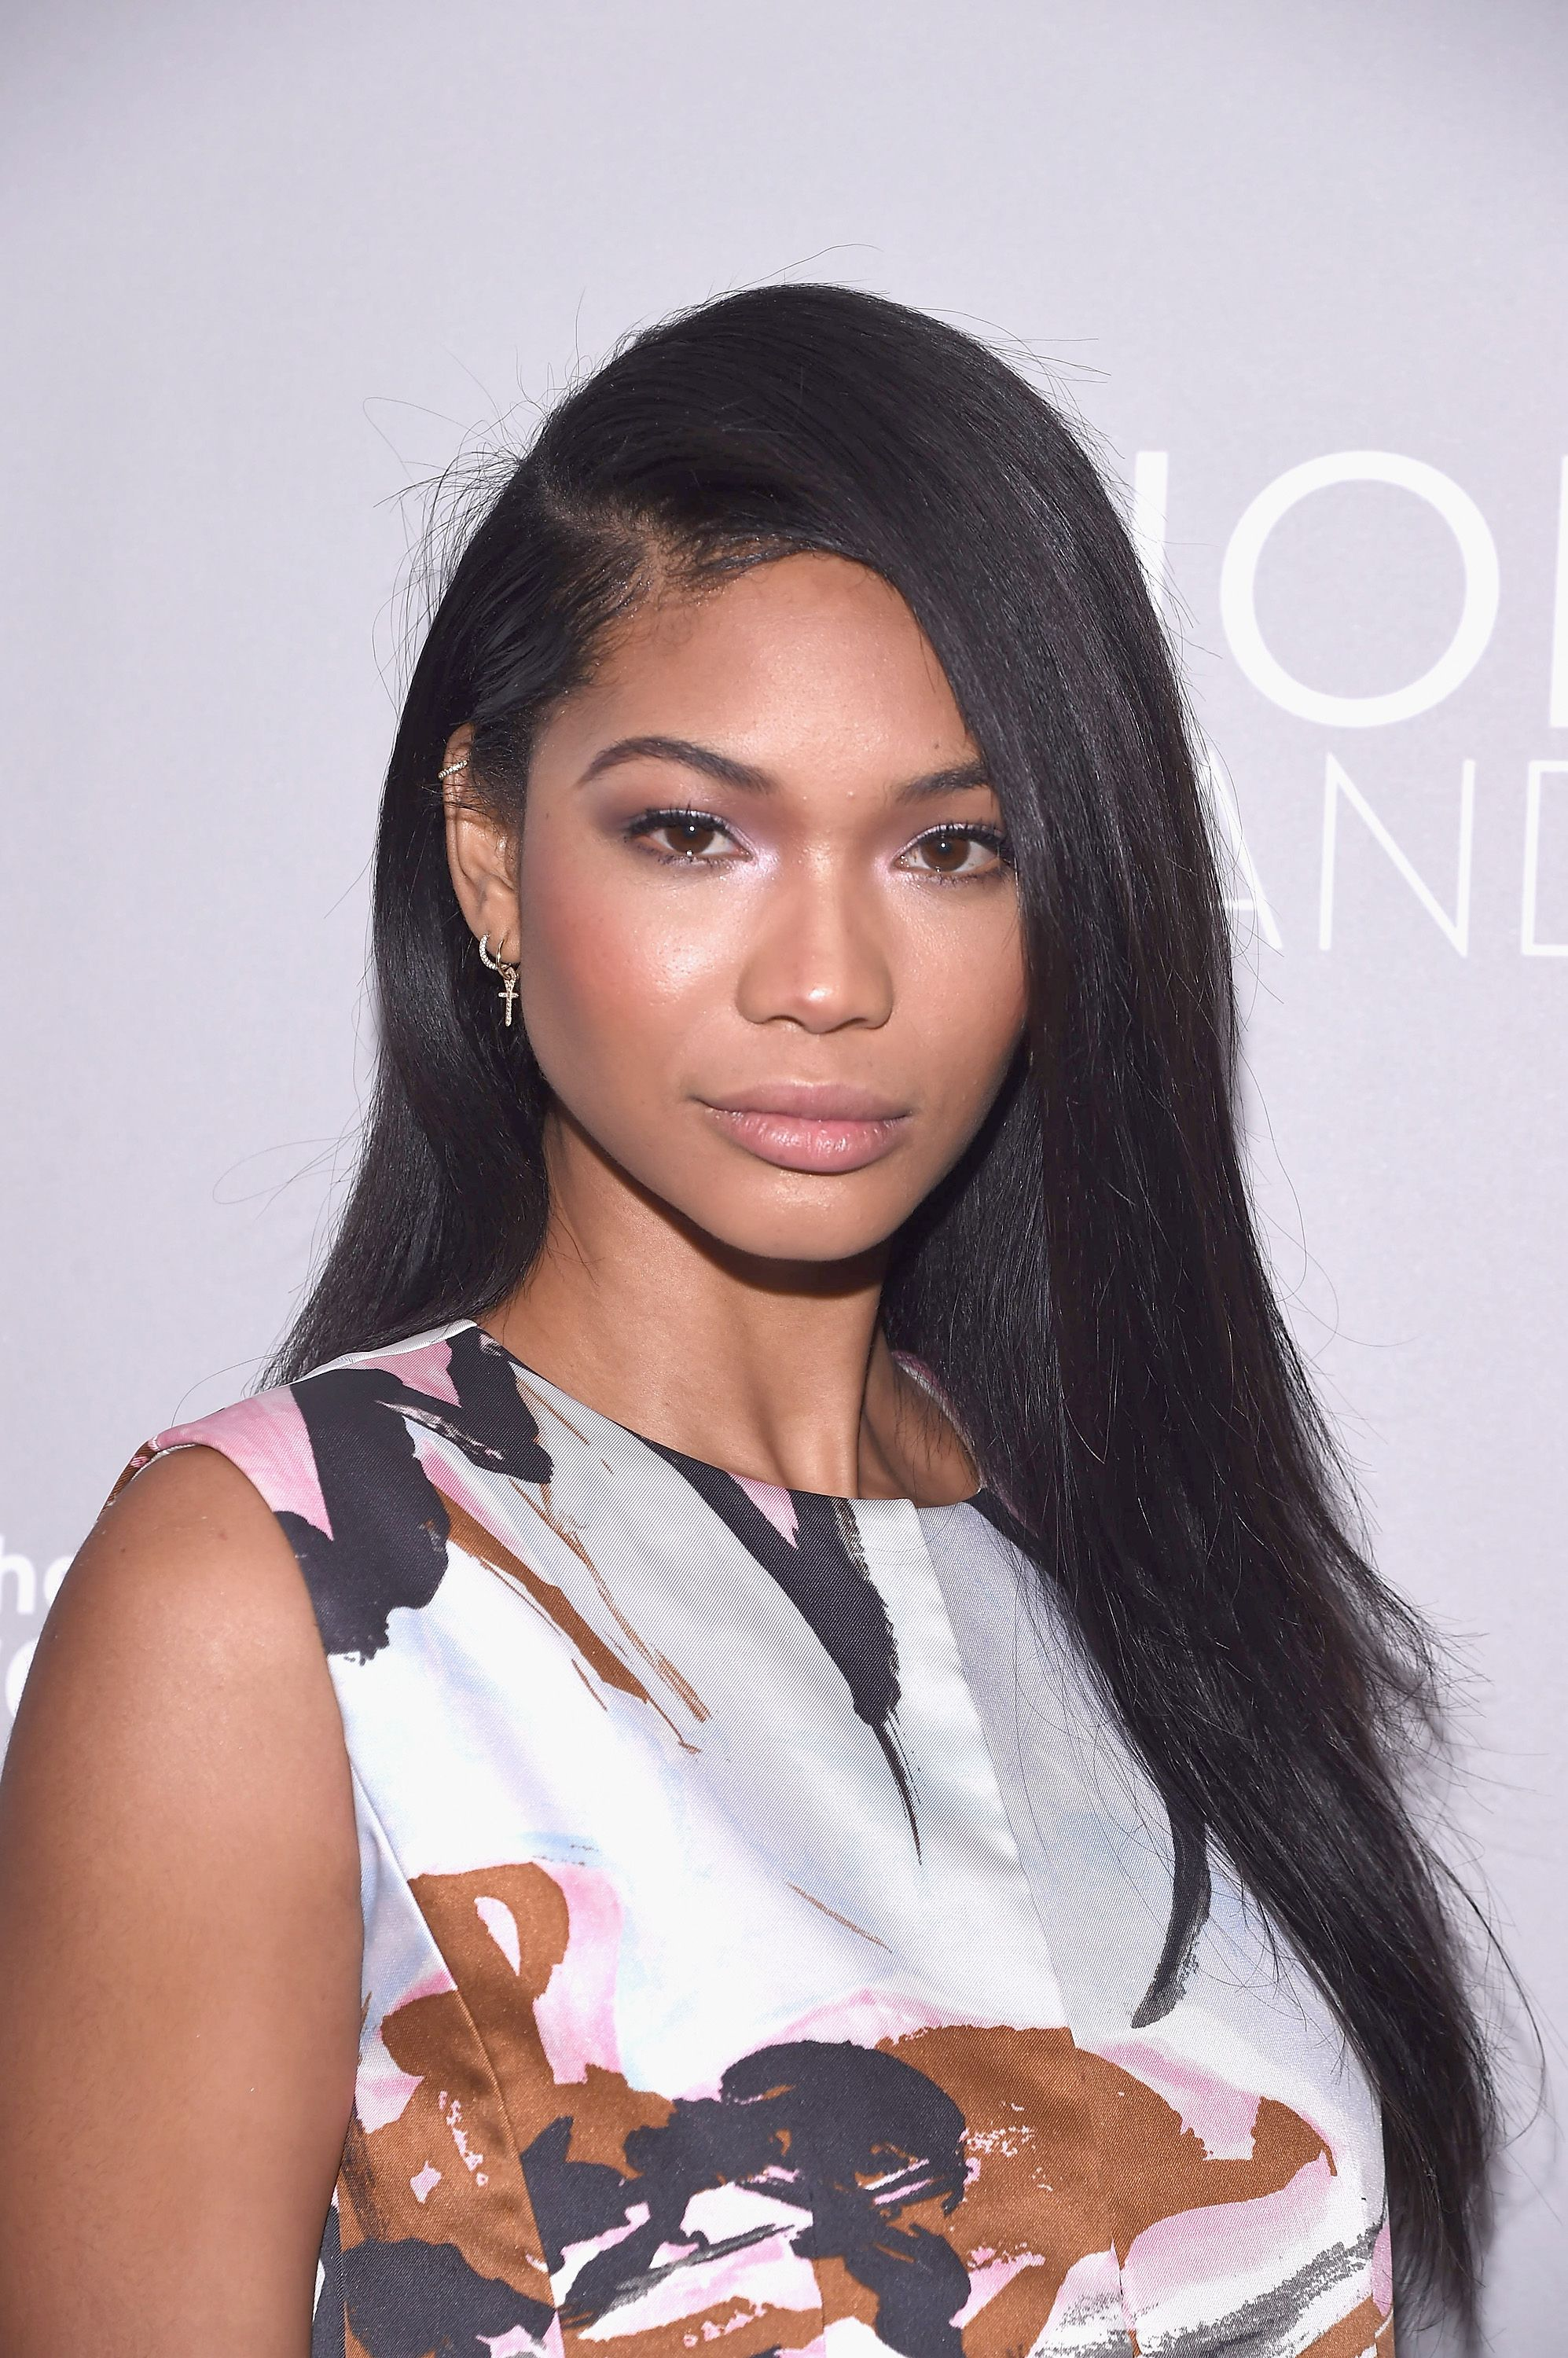 Metallic eyes & sleek hair means beauty points x a mill for Chanel Iman